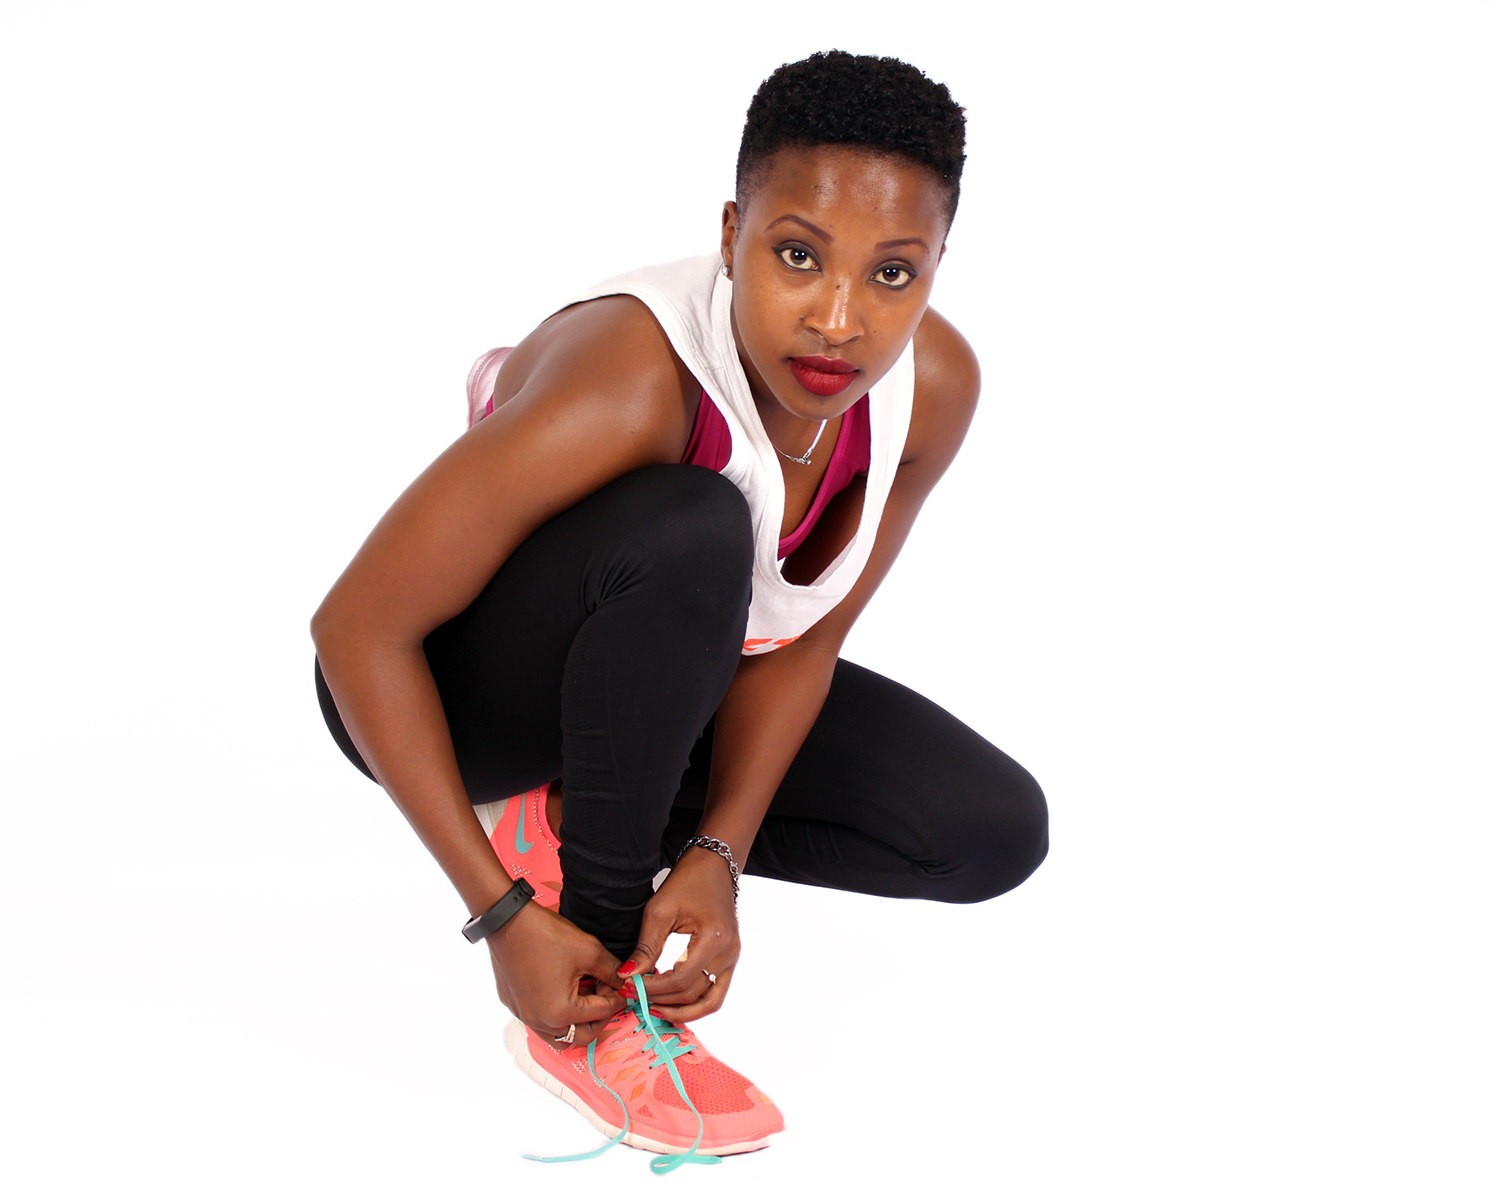 Fitness woman tying her shoes